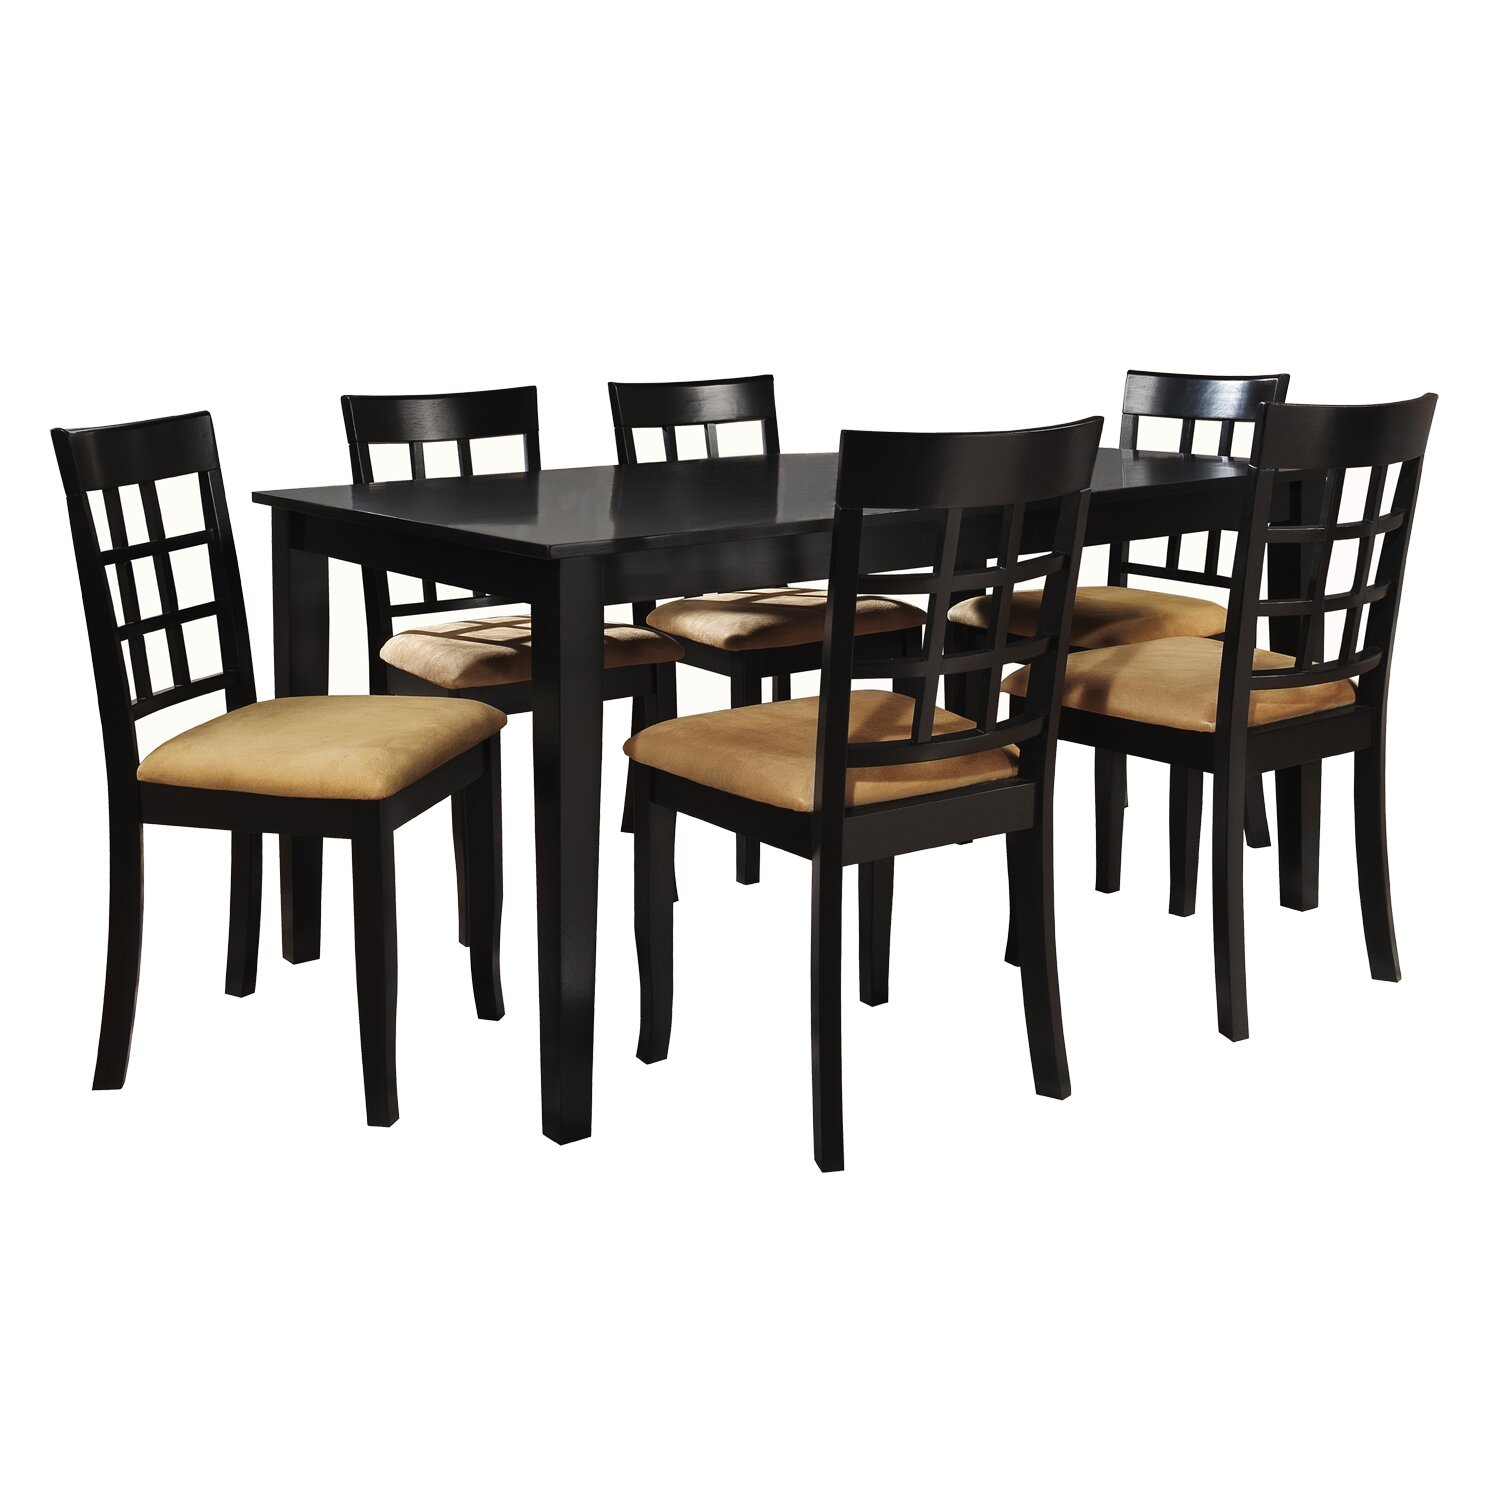 Kingstown home jeannette 7 piece dining set reviews for Furniture 7 reviews